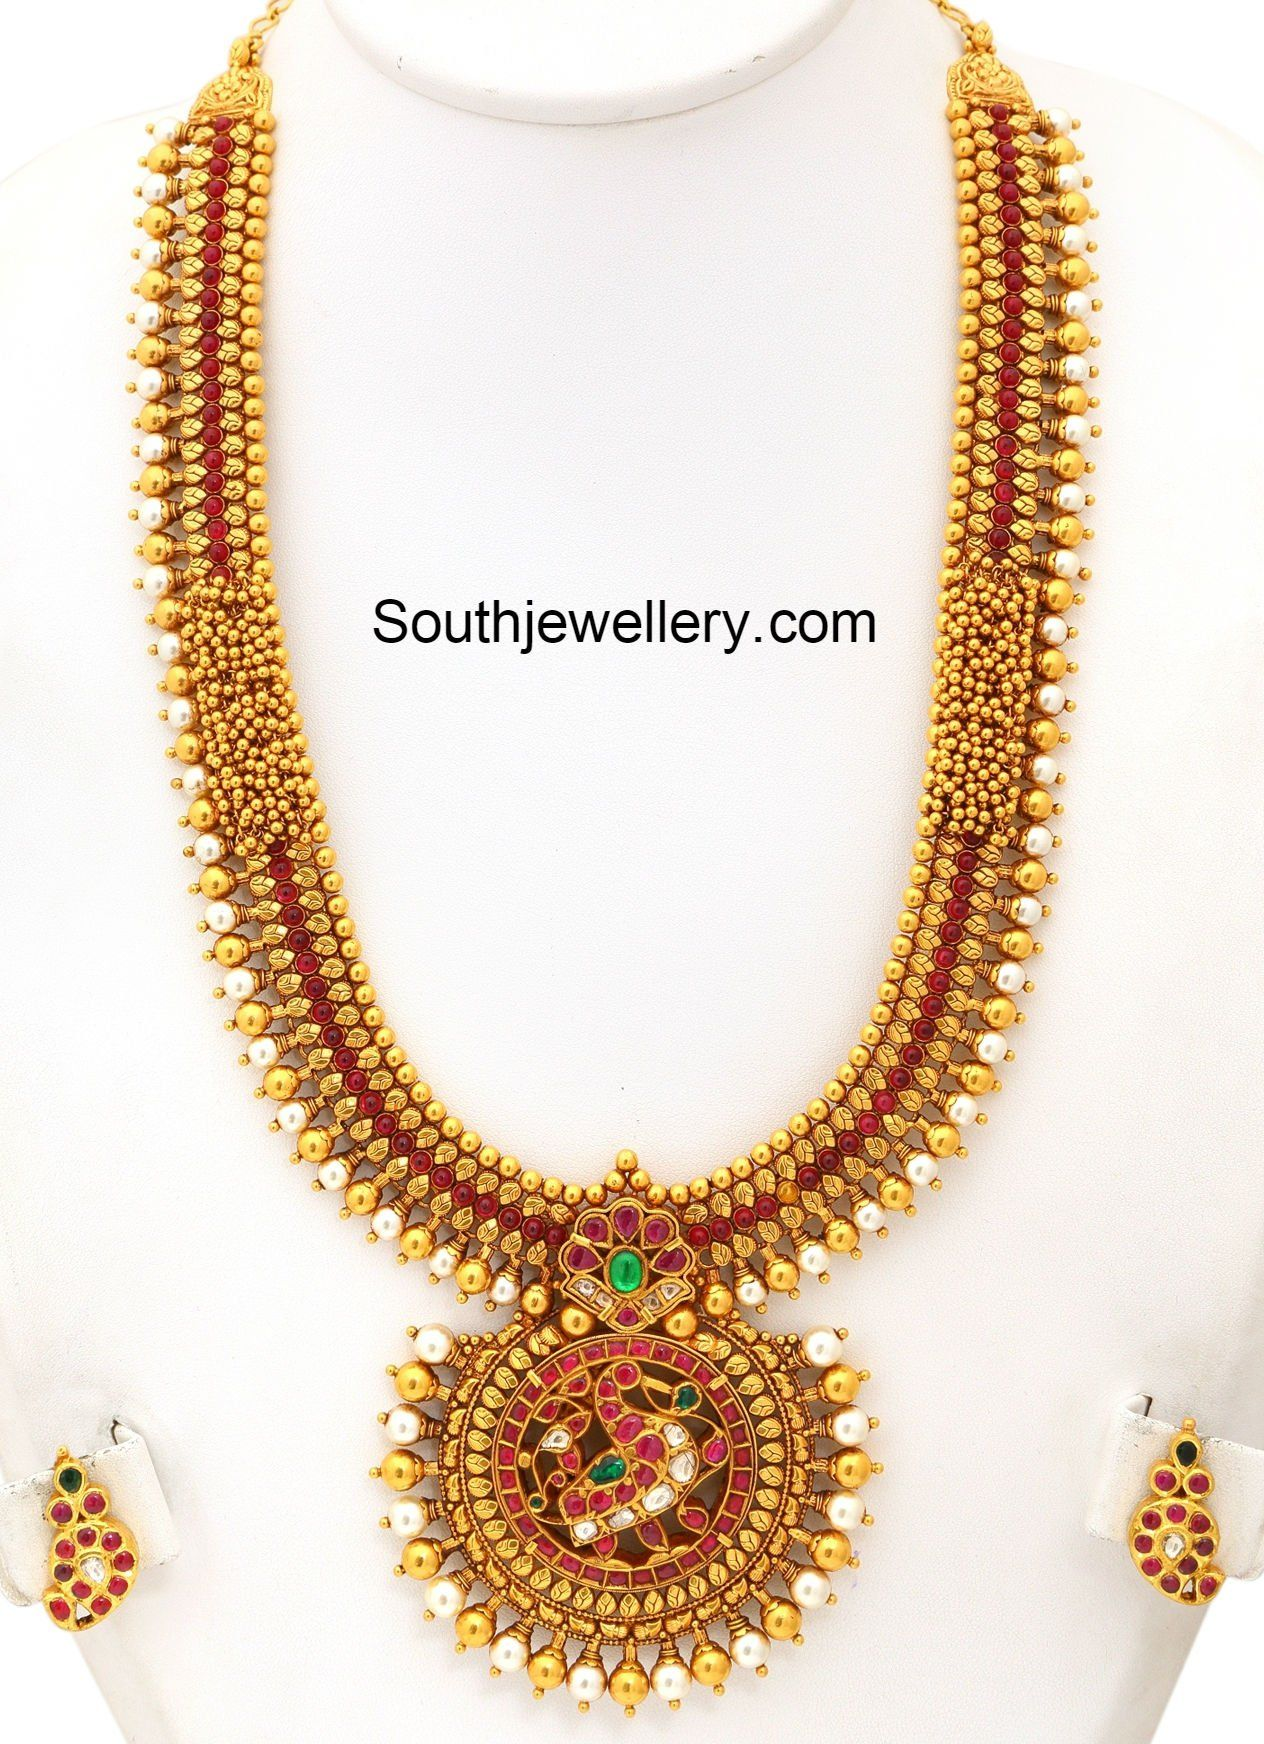 22 carat gold floral designer pendant with multiple beads chain and - Antique Gold Haram Antique Goldchains